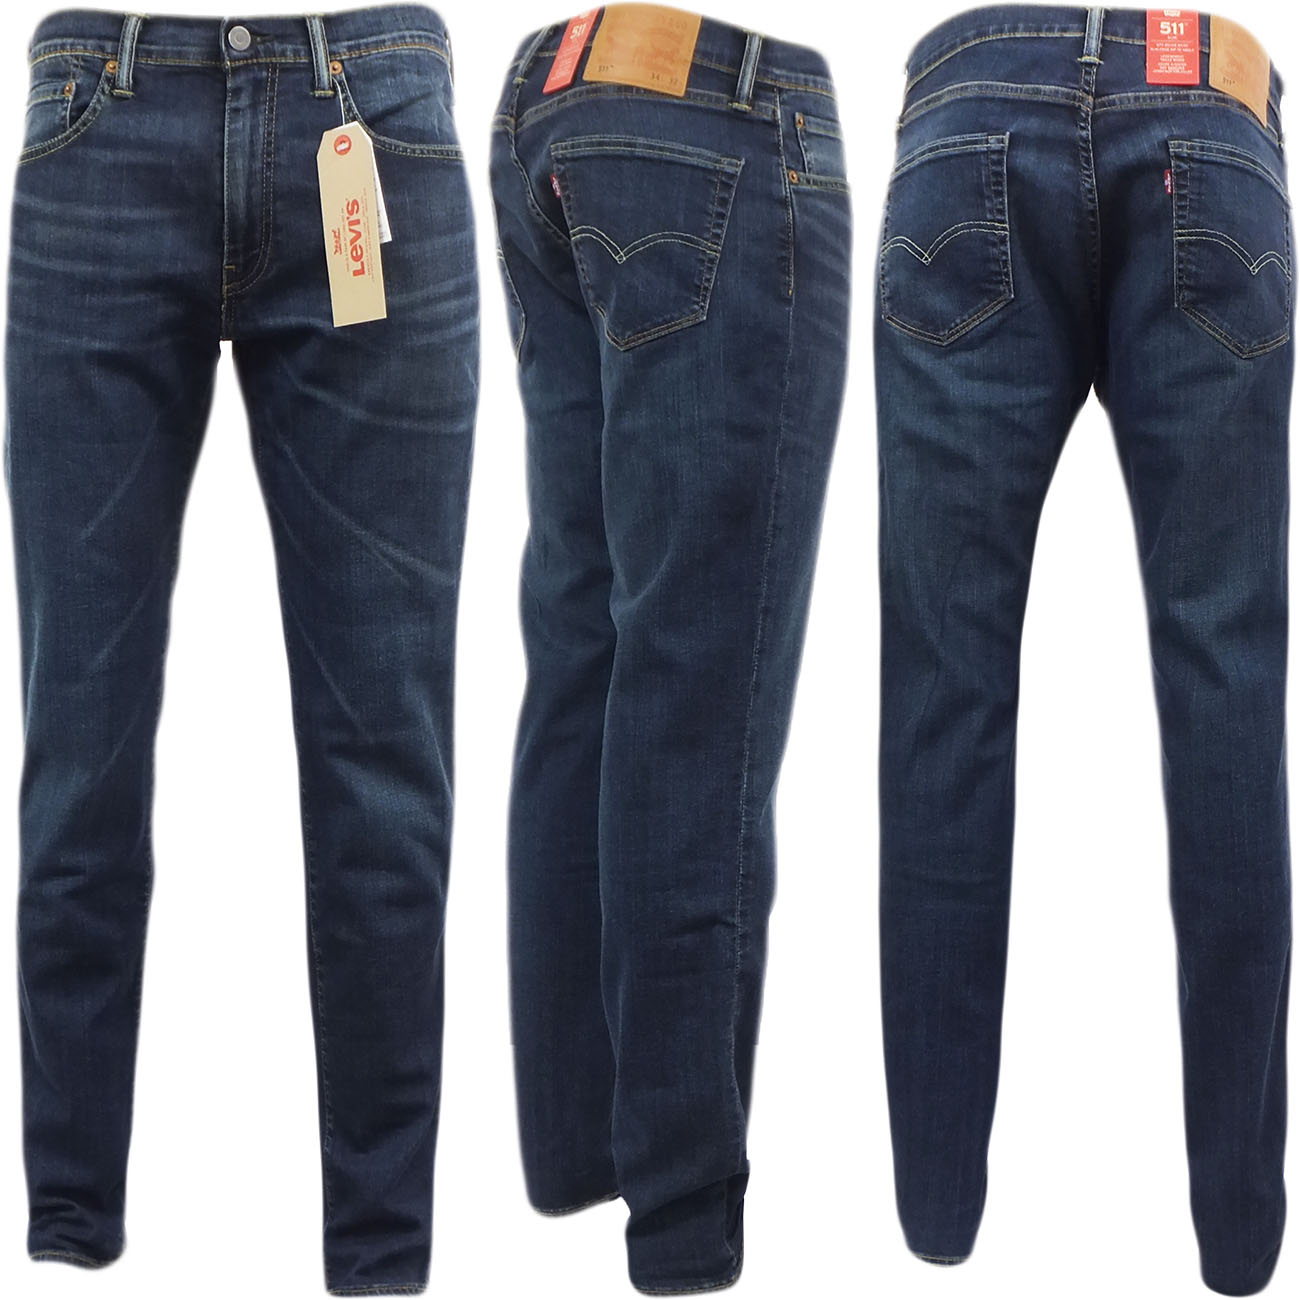 Jeans & Denim: Free Shipping on orders over $45 at thrushop-06mq49hz.ga - Your Online Jeans & Denim Store! Indigo People Premium Quality Skinny Stretch Dark Indigo Bake Jeans. Quick View $ 99 Lee Dungarees Men's Straight Fit Jean. 5 Reviews. Quick View $ Was $ $ OFF. Levi's Mens Straight Leg Jeans Loose Fit Mid-Rise.